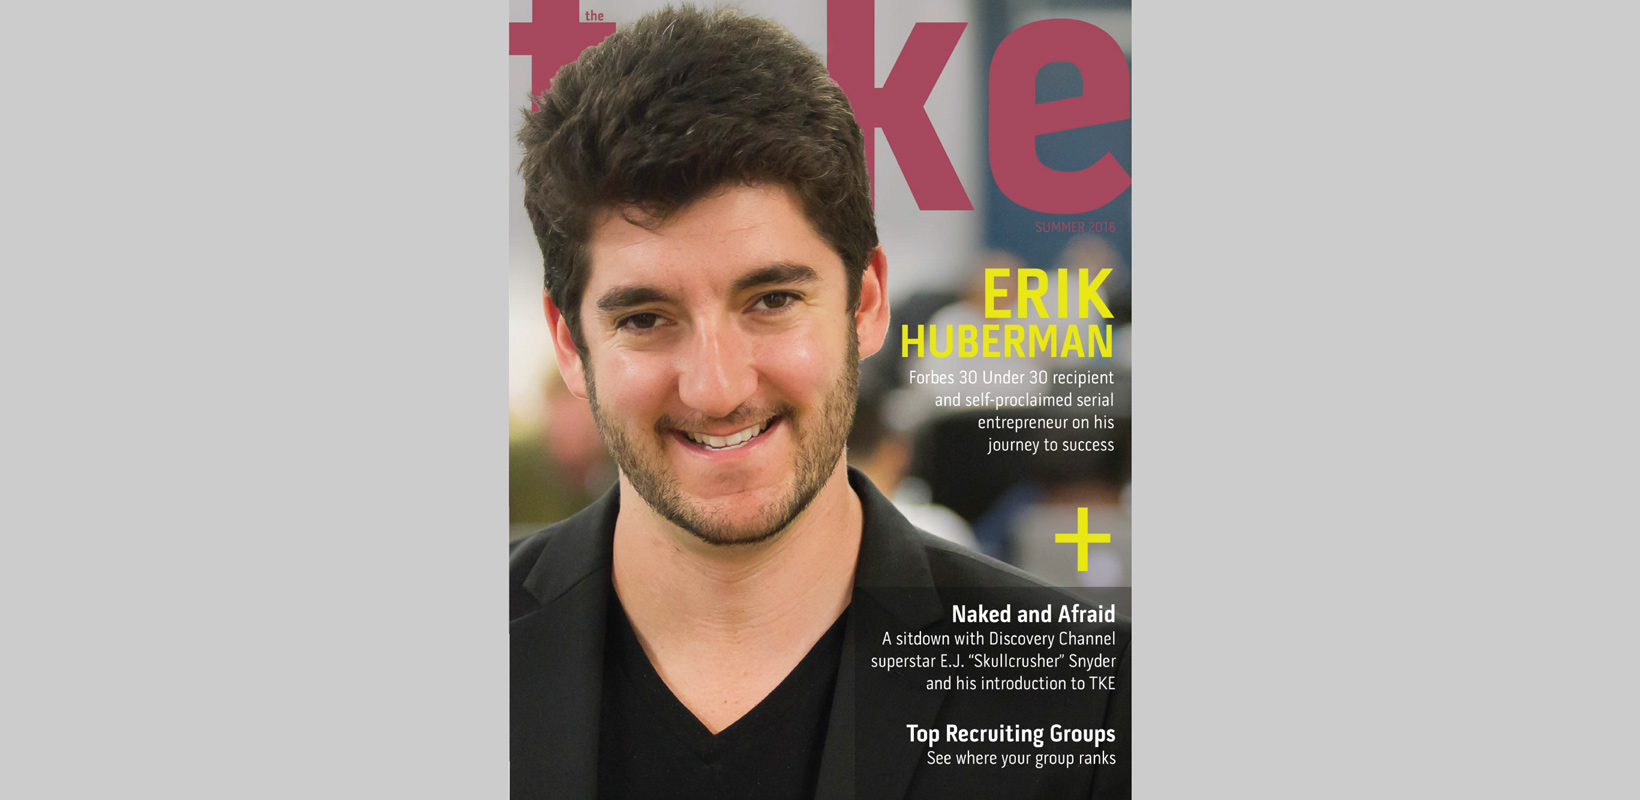 THE TEKE - Summer 2016 Release / Fall Content Due